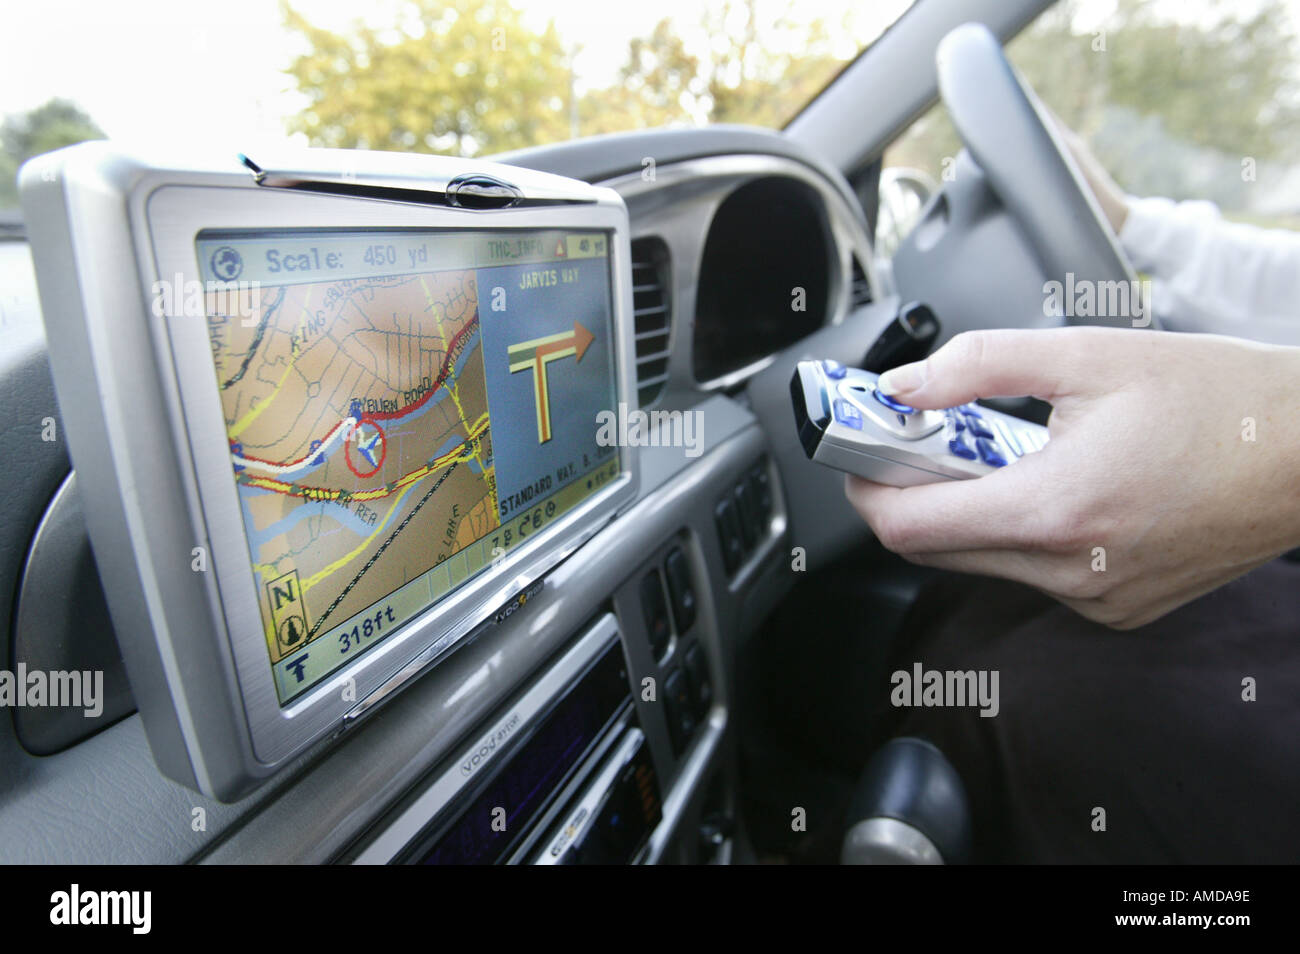 An in car satellite navigation system in the UK. Stock Photo